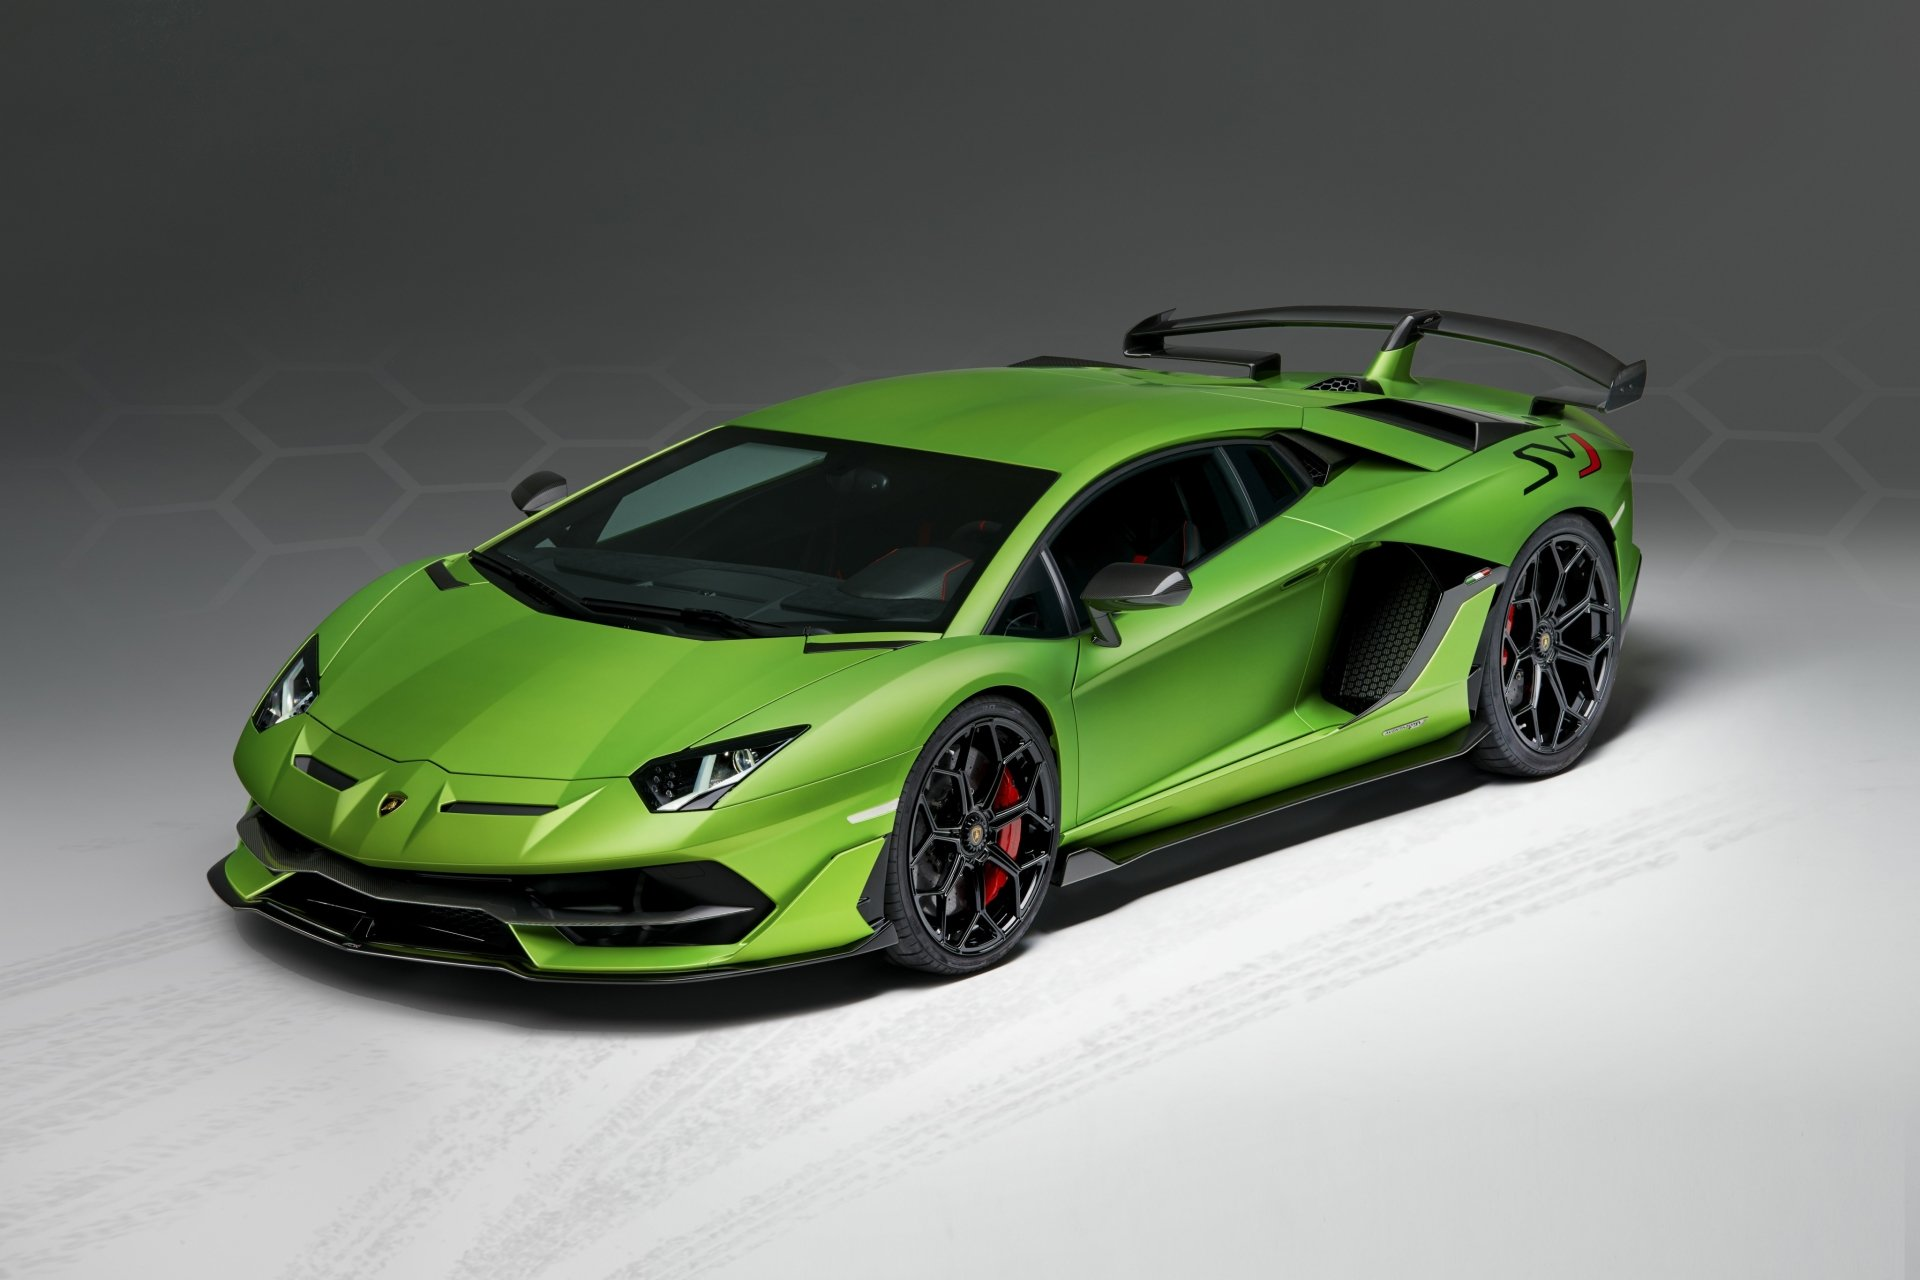 59 Lamborghini Aventador Svj Hd Wallpapers Background Images Wallpaper Abyss